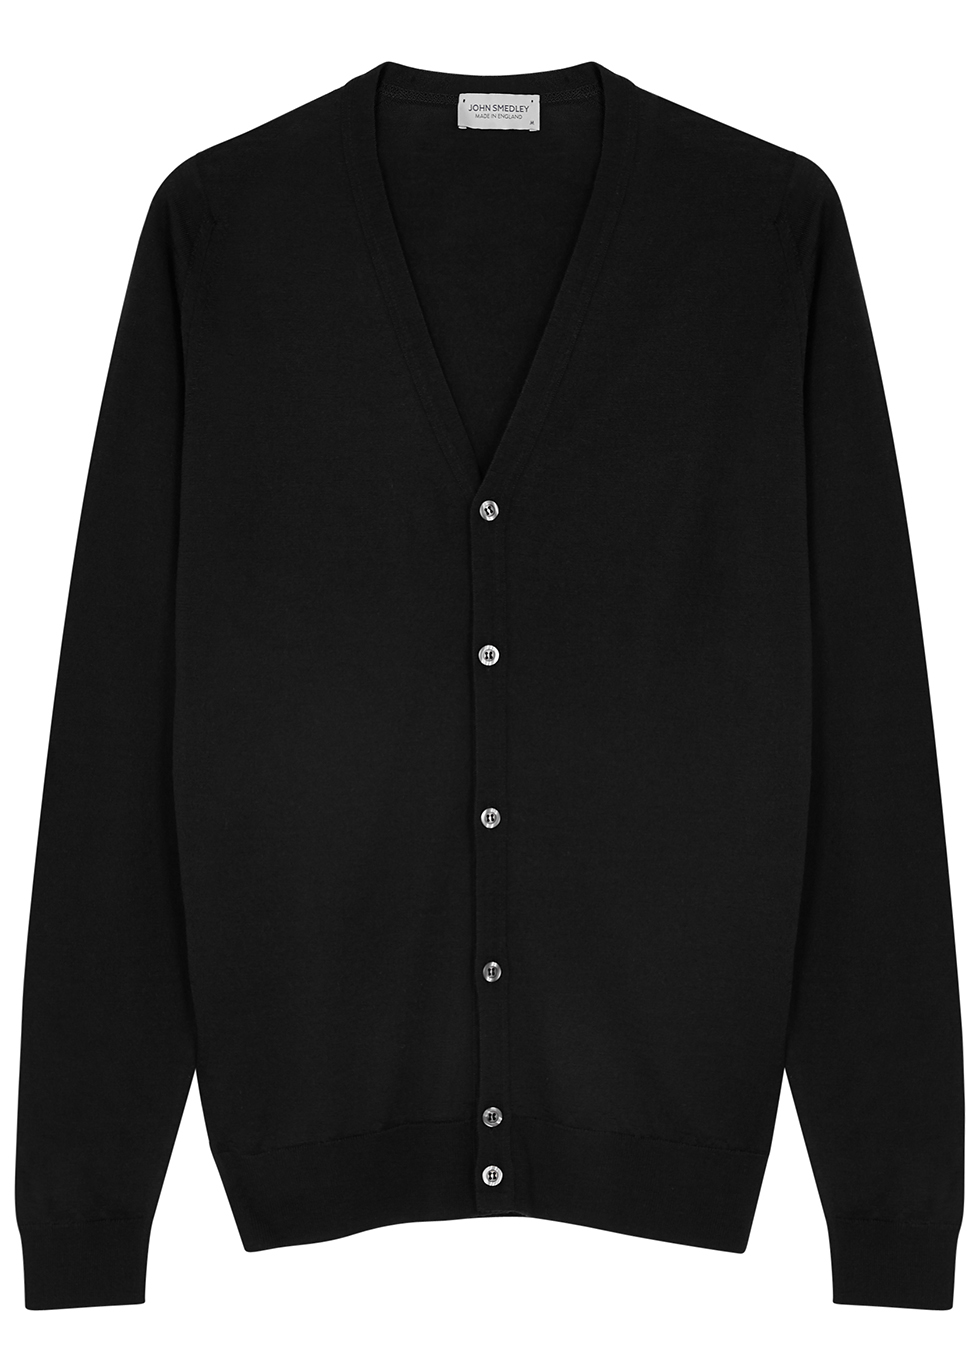 Petworth black wool cardigan